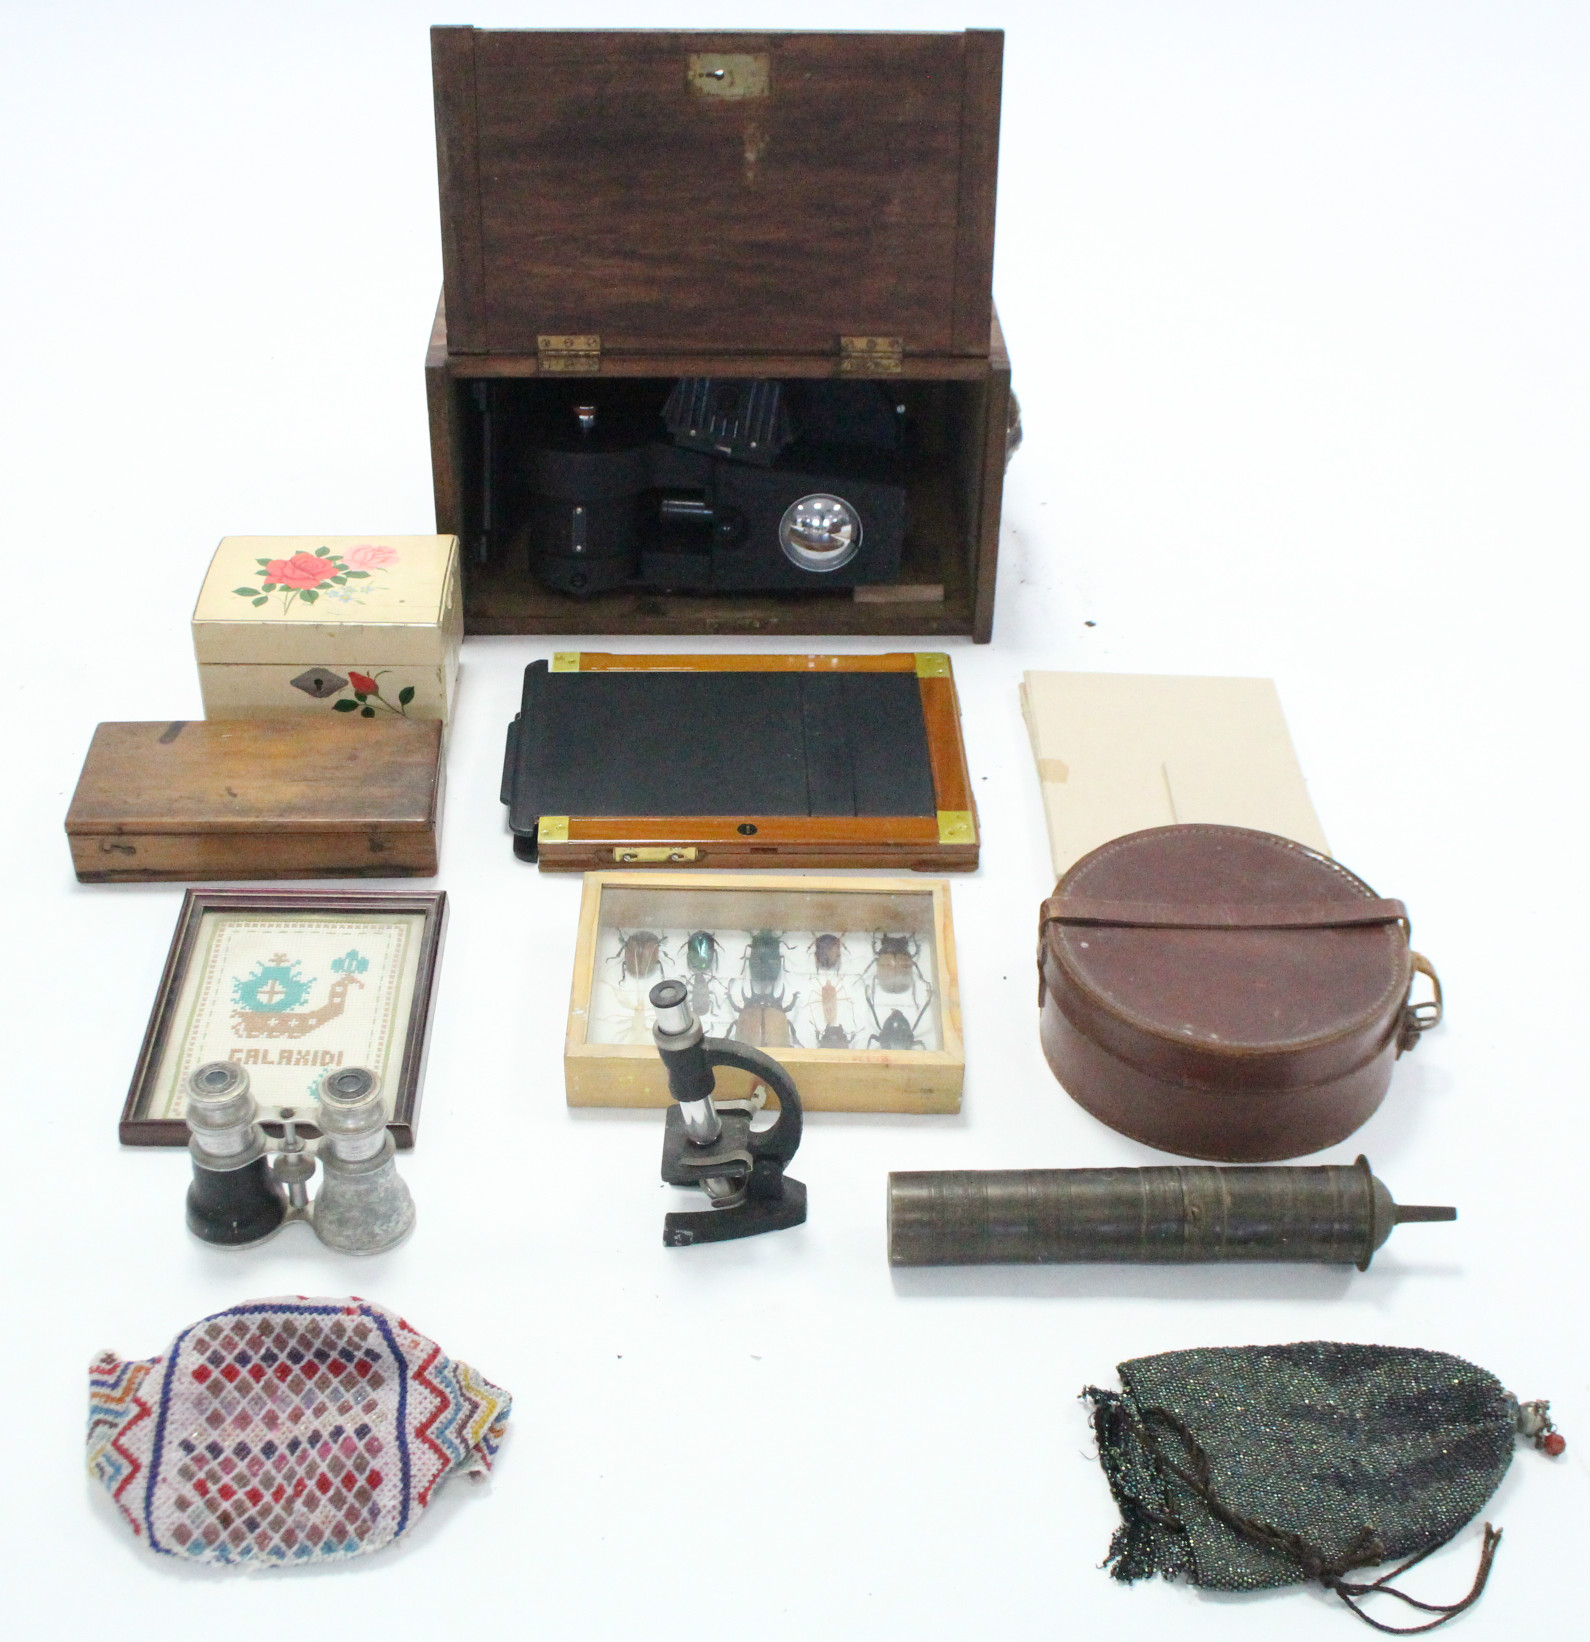 Lot 16 - A Pathescope film projector in mahogany case; a leather collar box; a Garran brass spit-roasting